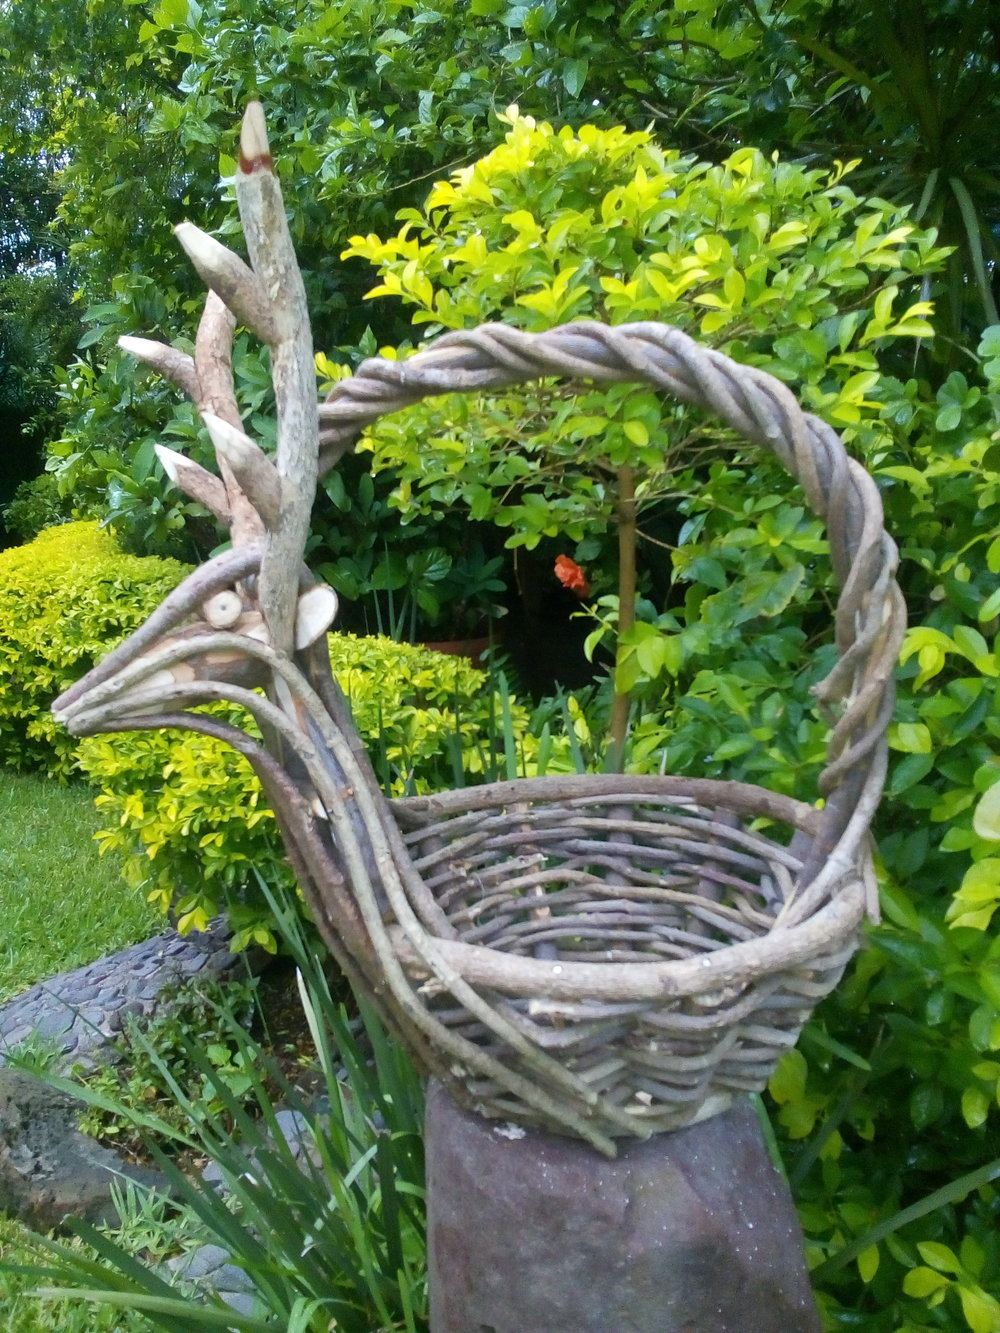 Deer Basket